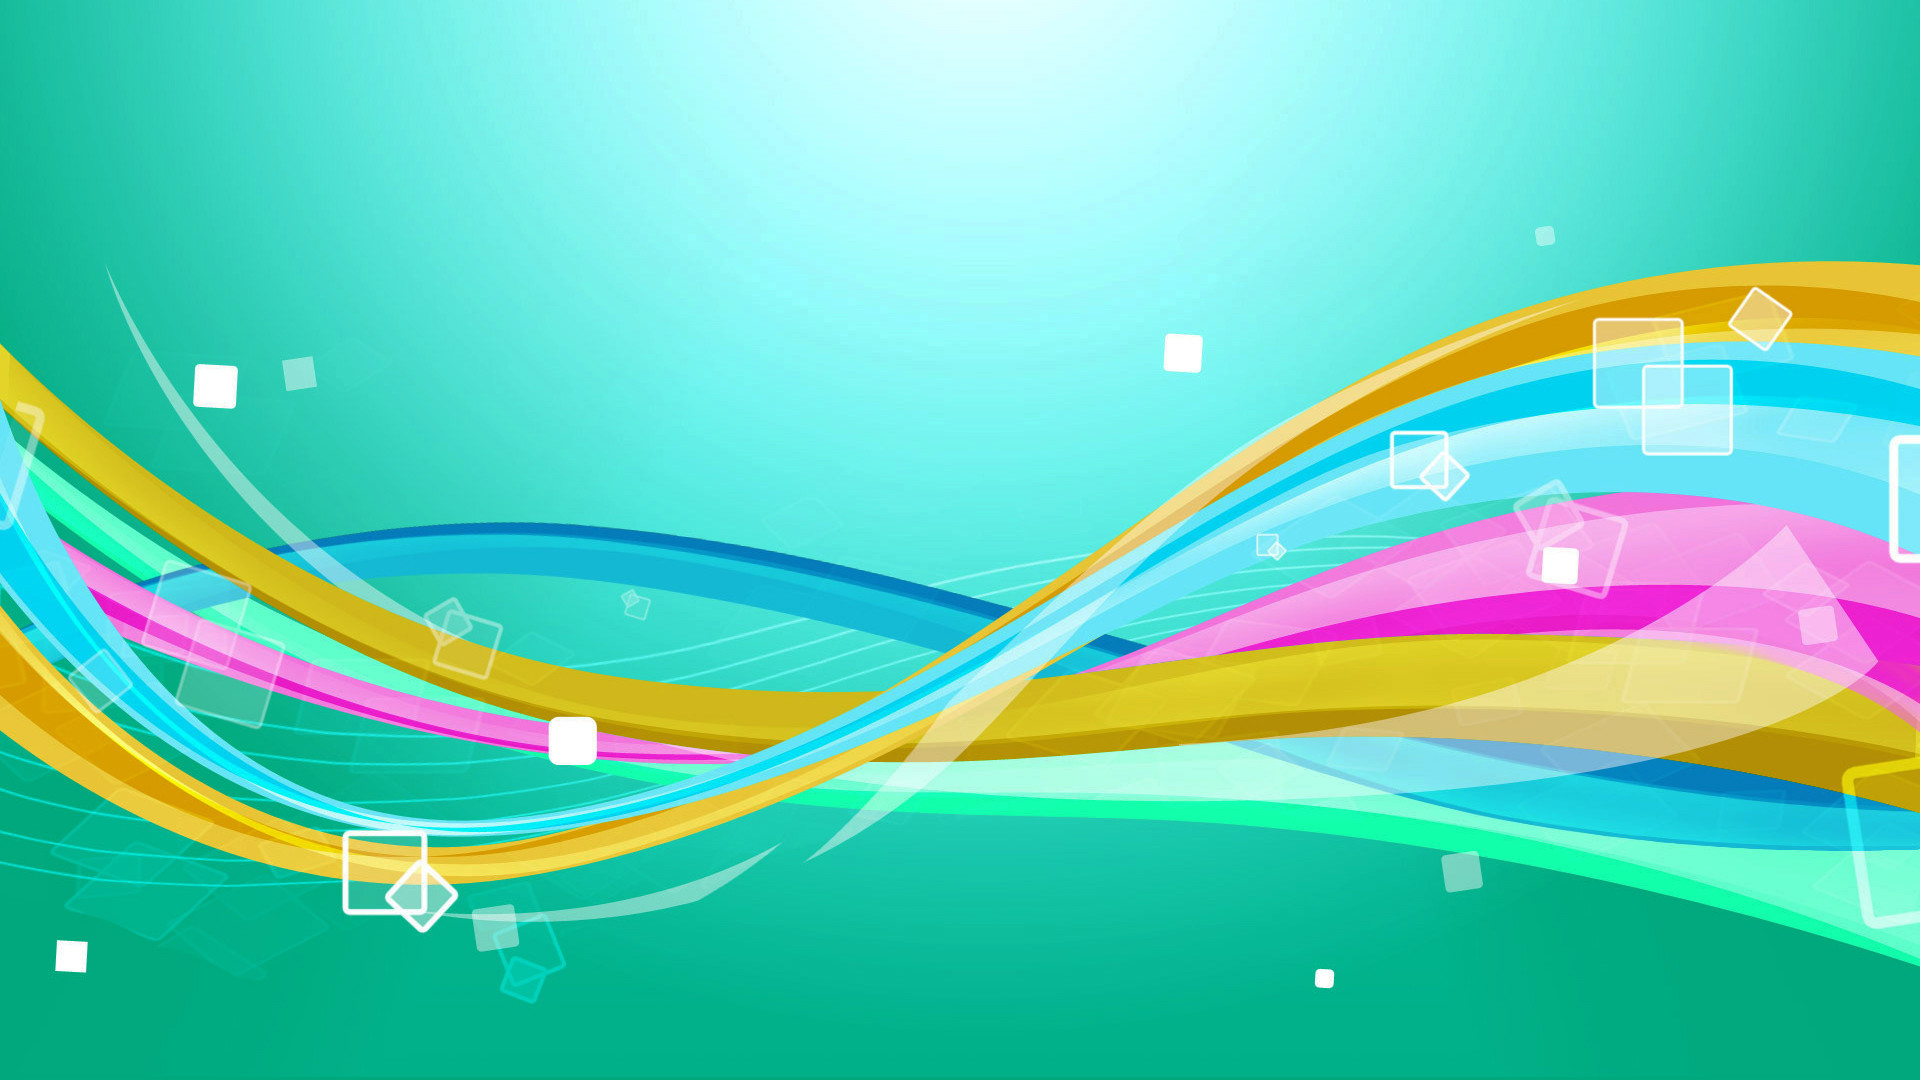 Res: 1920x1080, animated 3d wallpaper for desktop. stunning hd colorful background